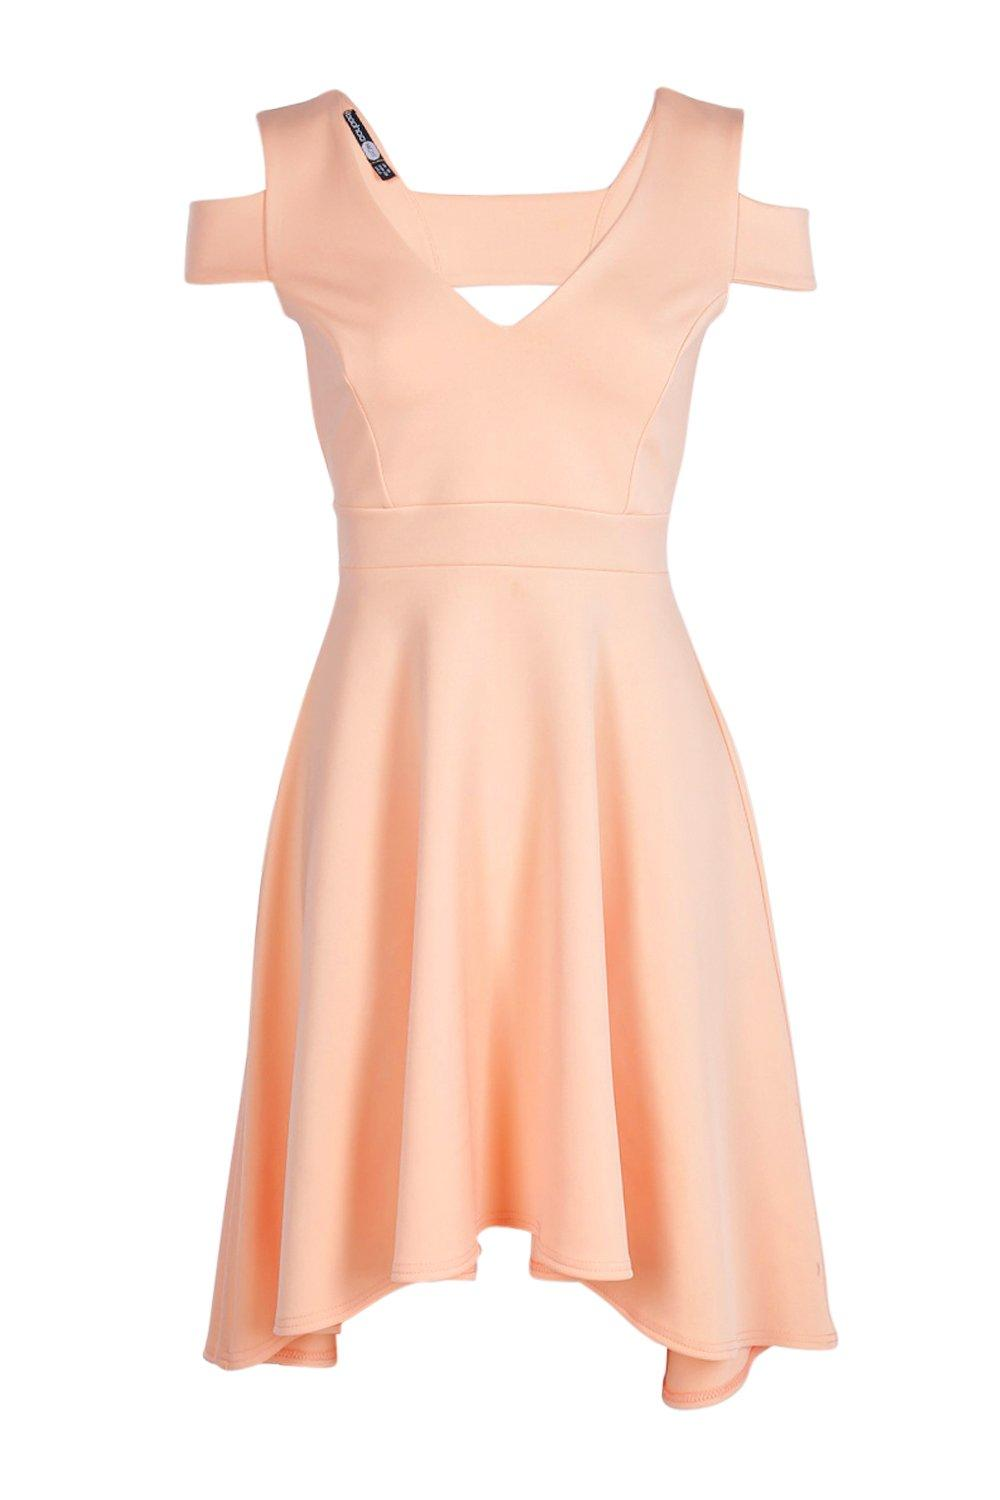 Boohoo womens clea bardot plunge high low skater dress ebay for Boohoo dresses for weddings